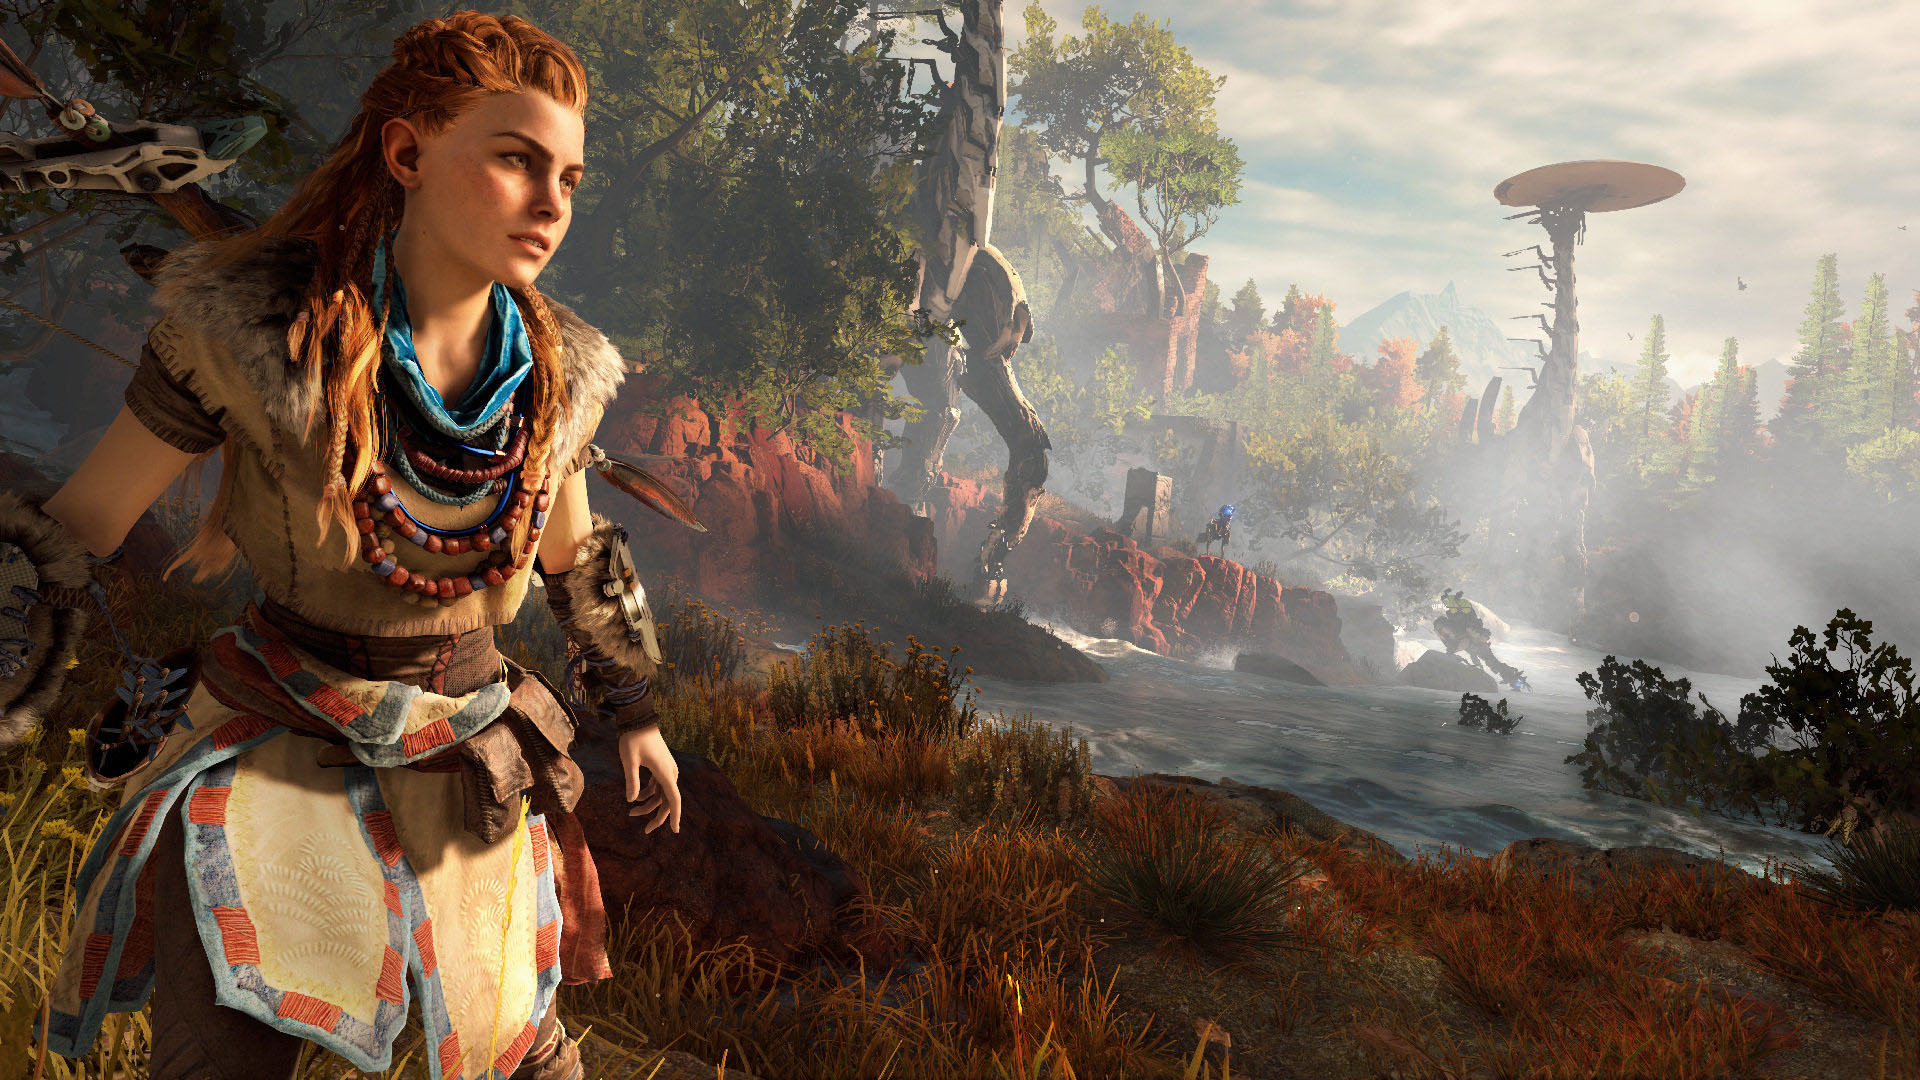 Video Sponsored By Sony Interactive Entertainment See This Remarkable Game The Way It Was Meant To Be Seen Artefact Free